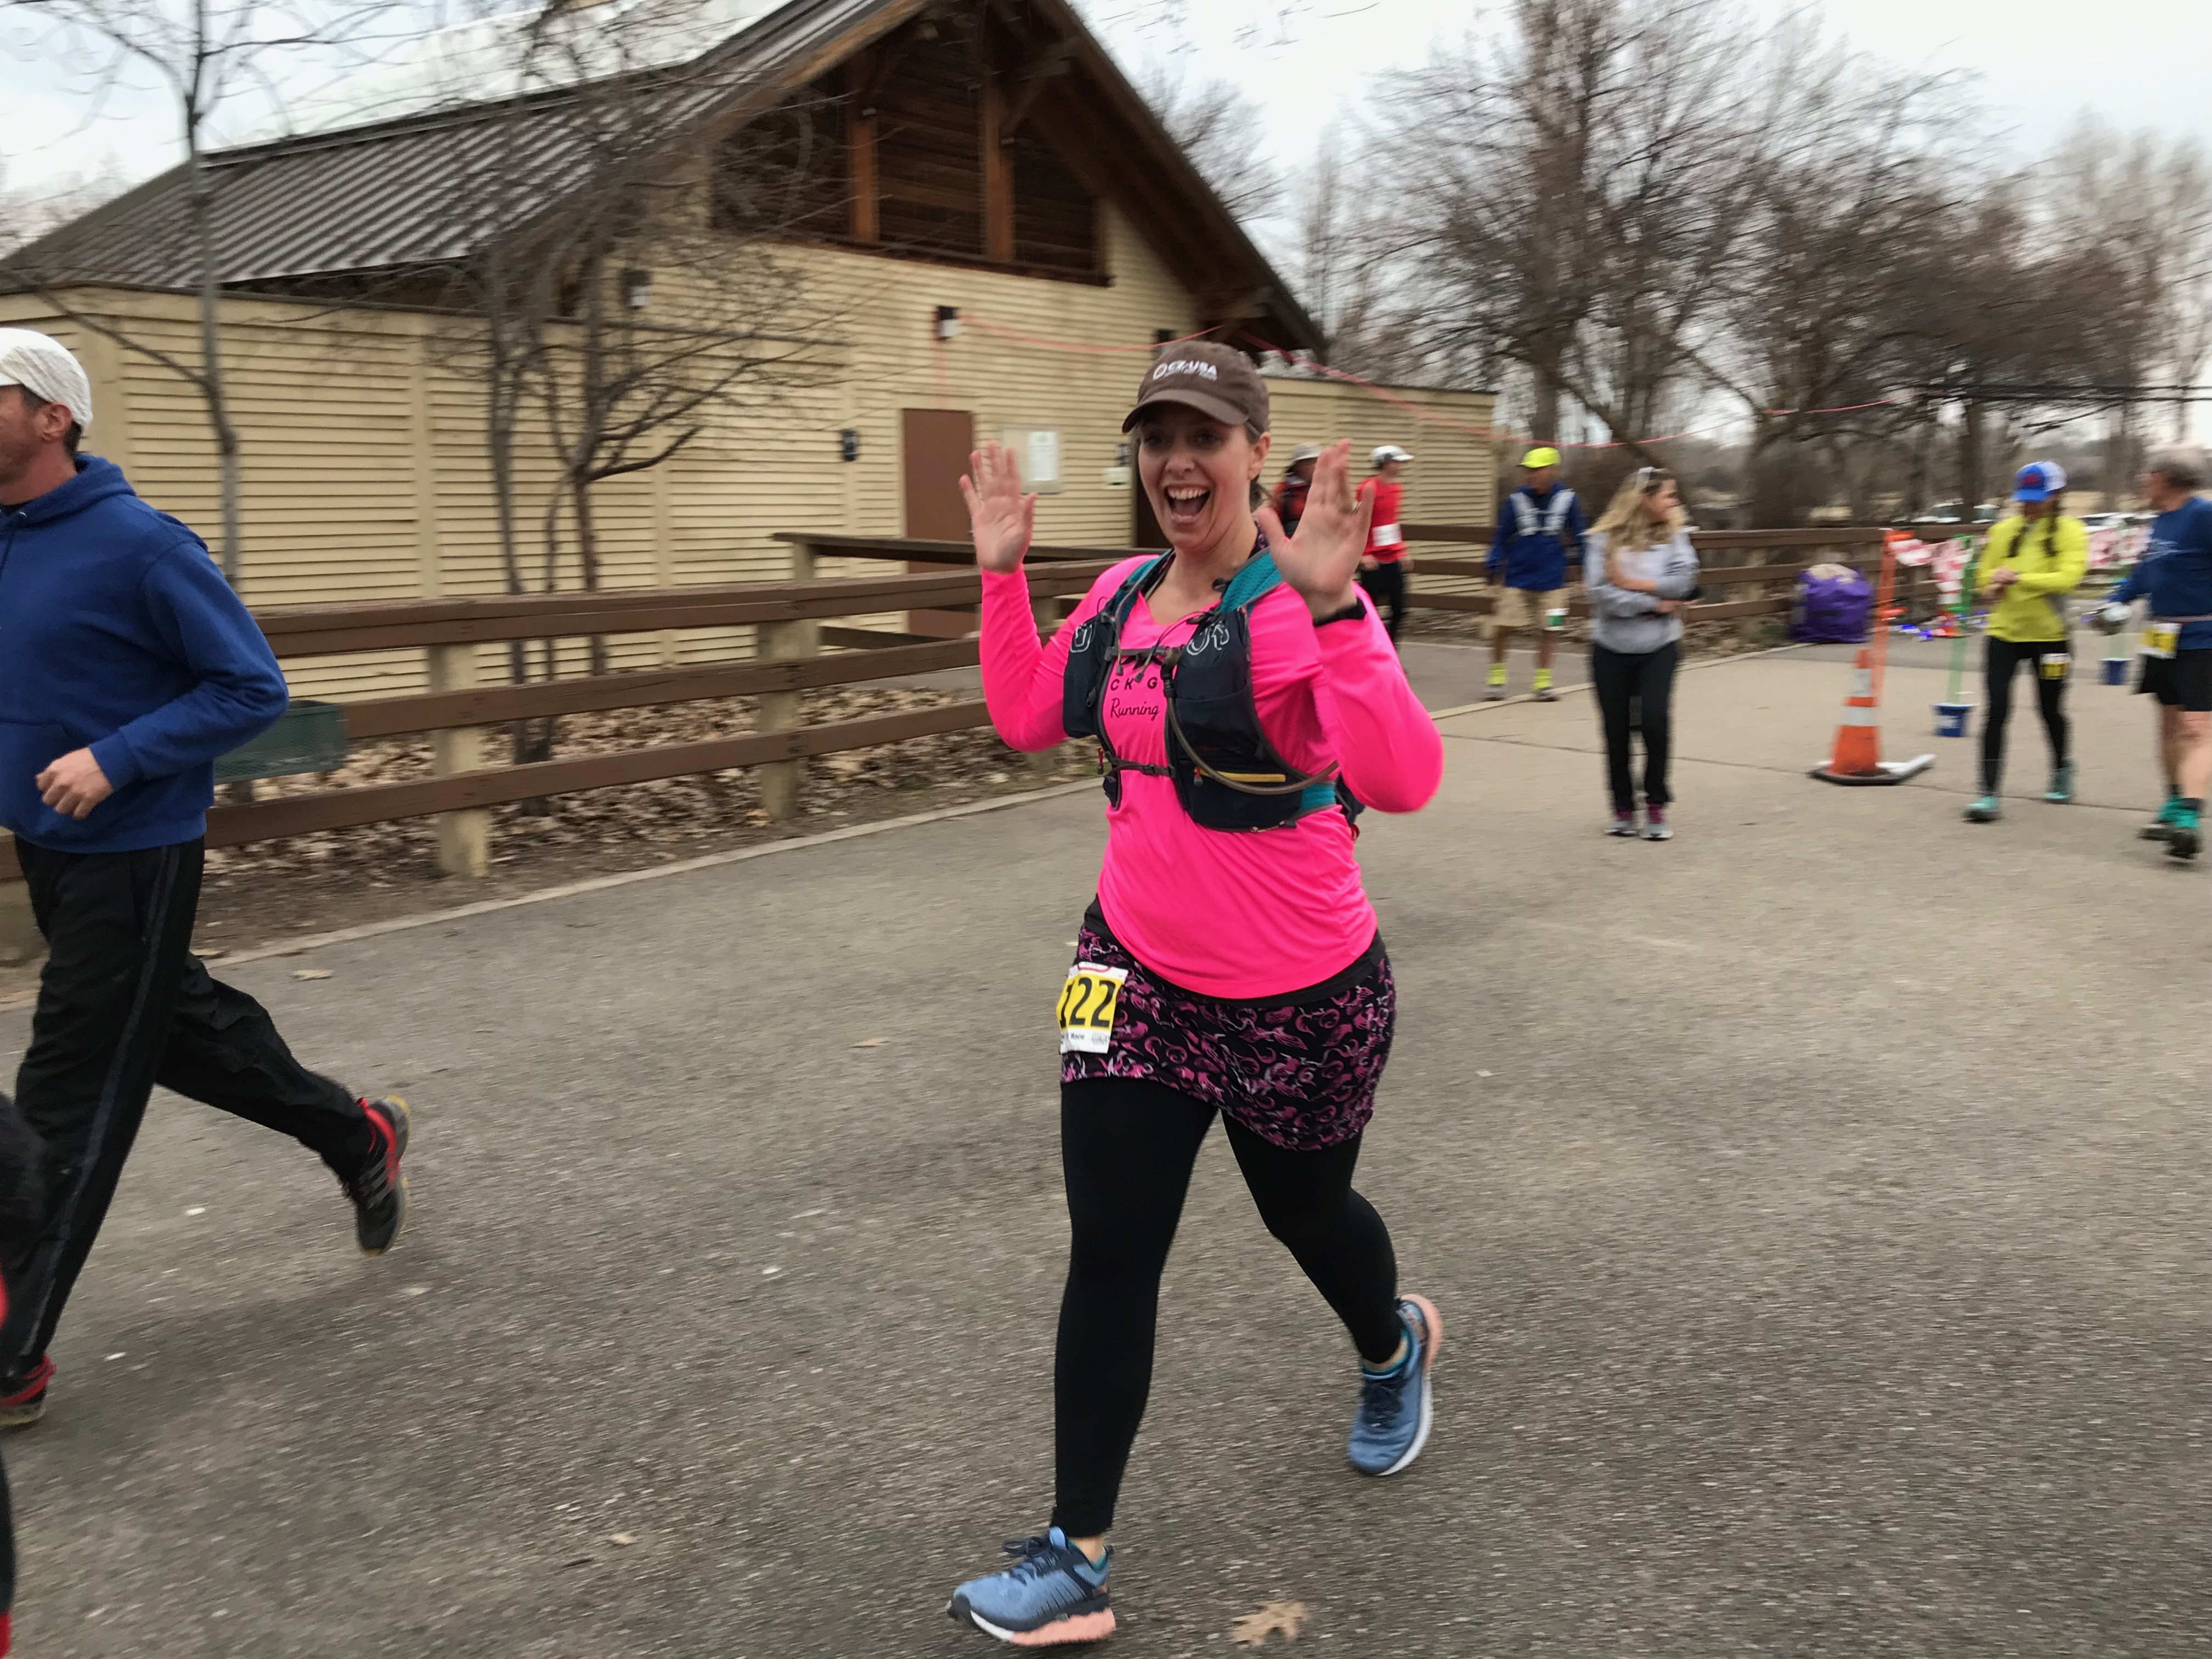 You are currently viewing Kristine Goodman runs 52.58 miles in her 24 hour race at the Pulse Endurance Runs!